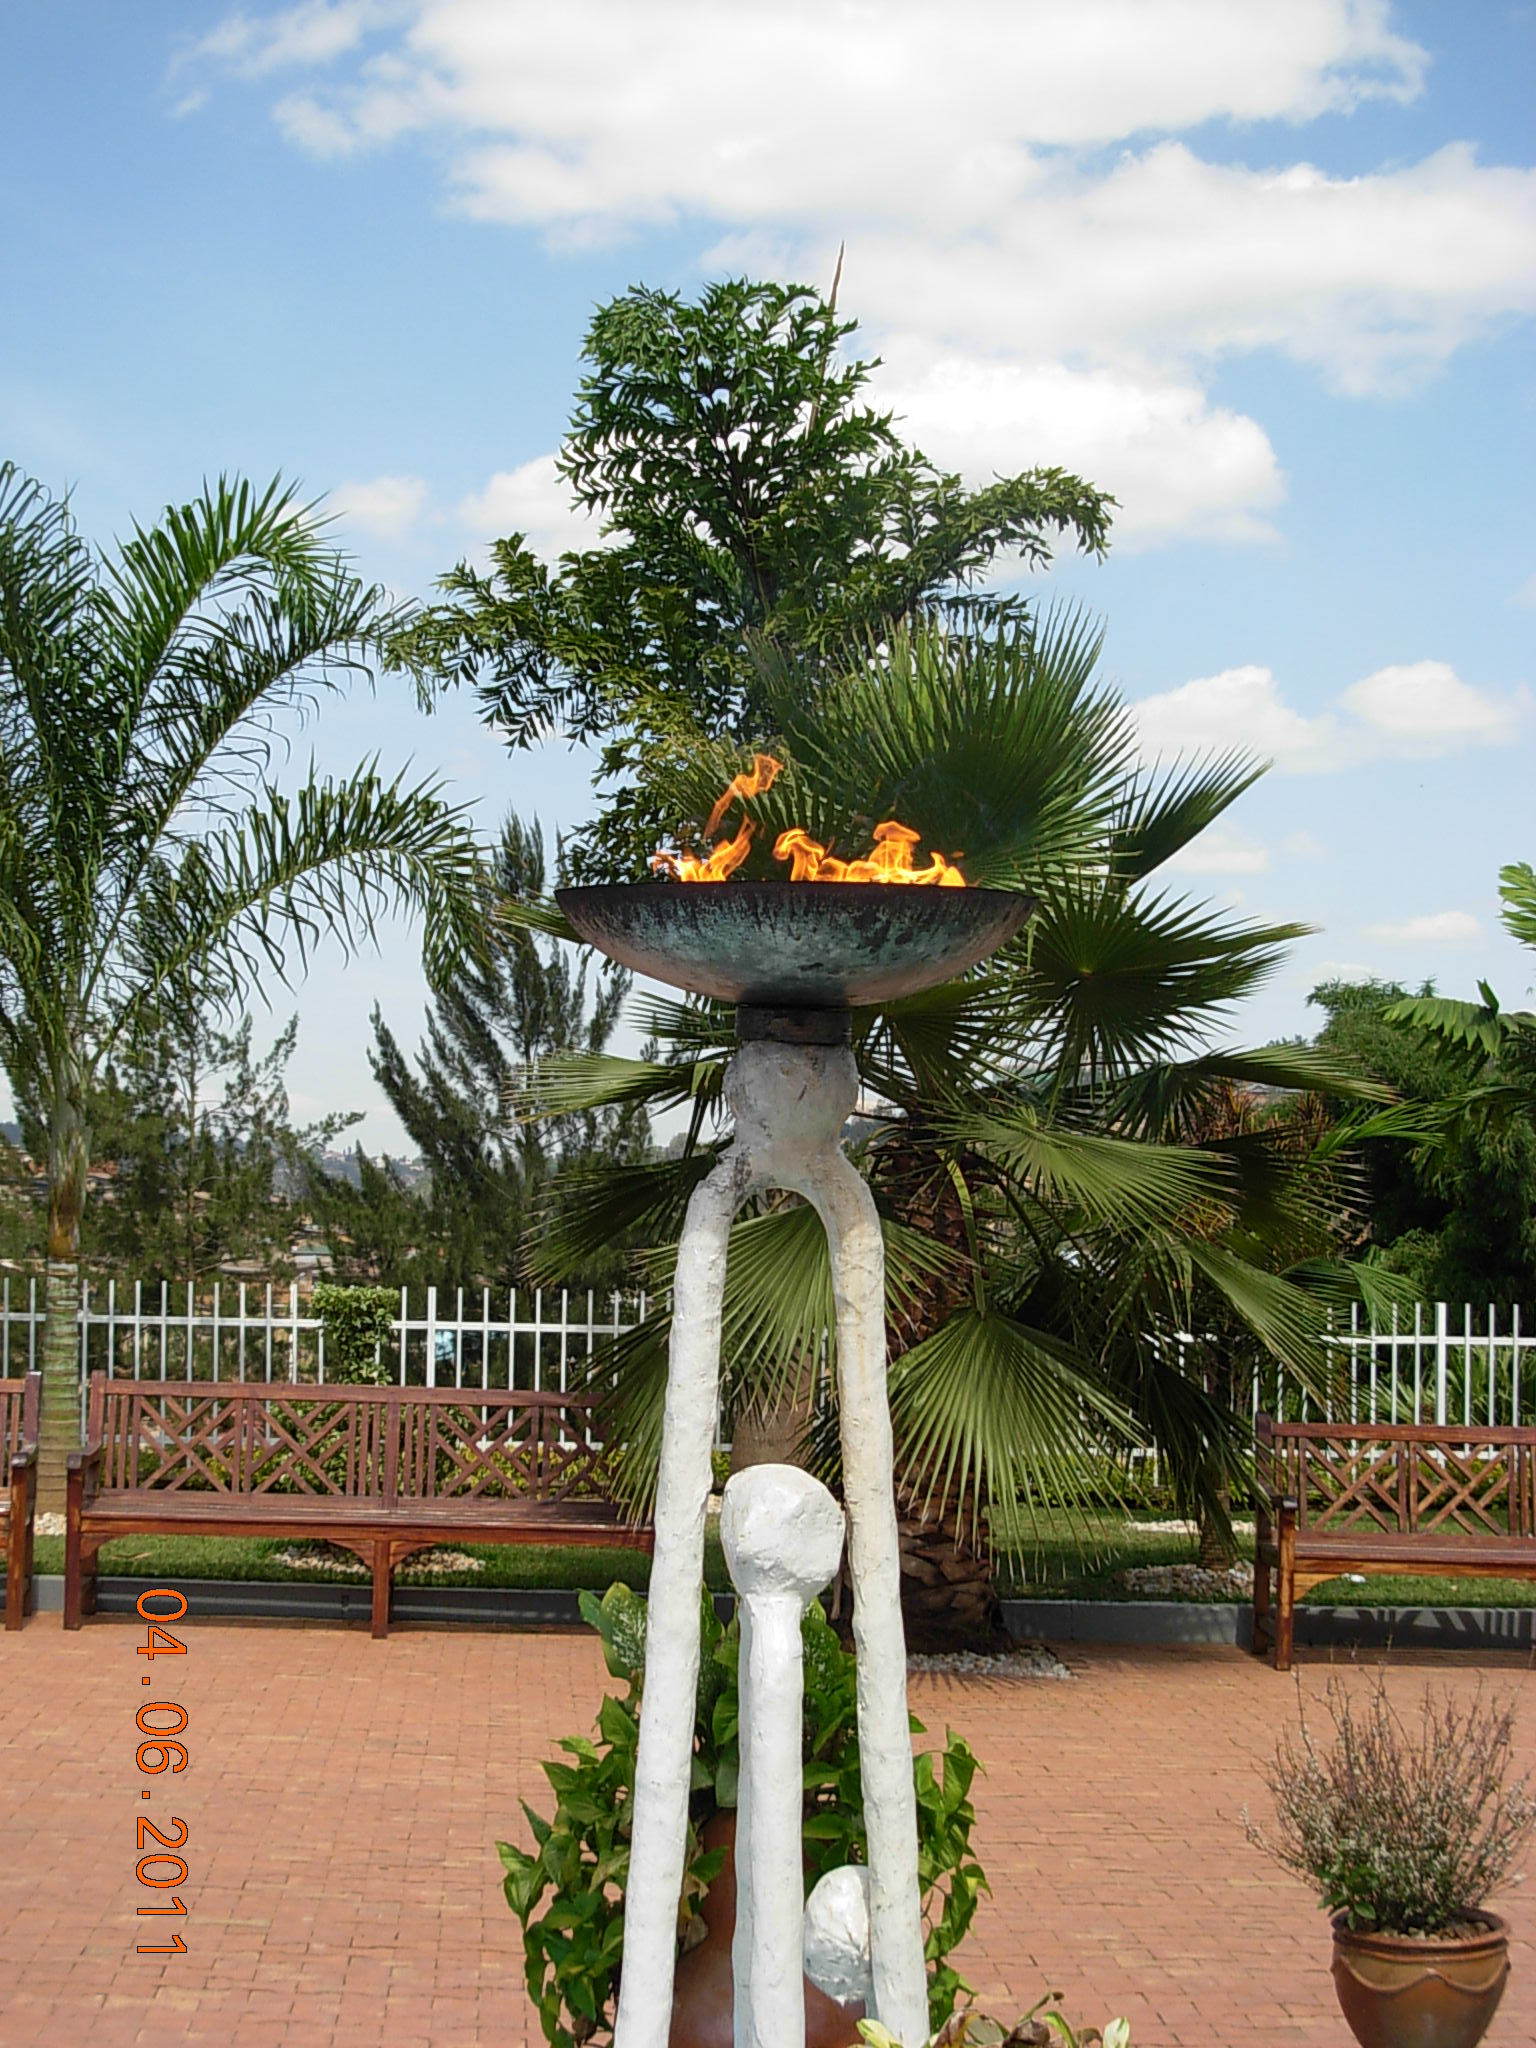 The symbolic flame remembering the victims of the Rwandan genocide